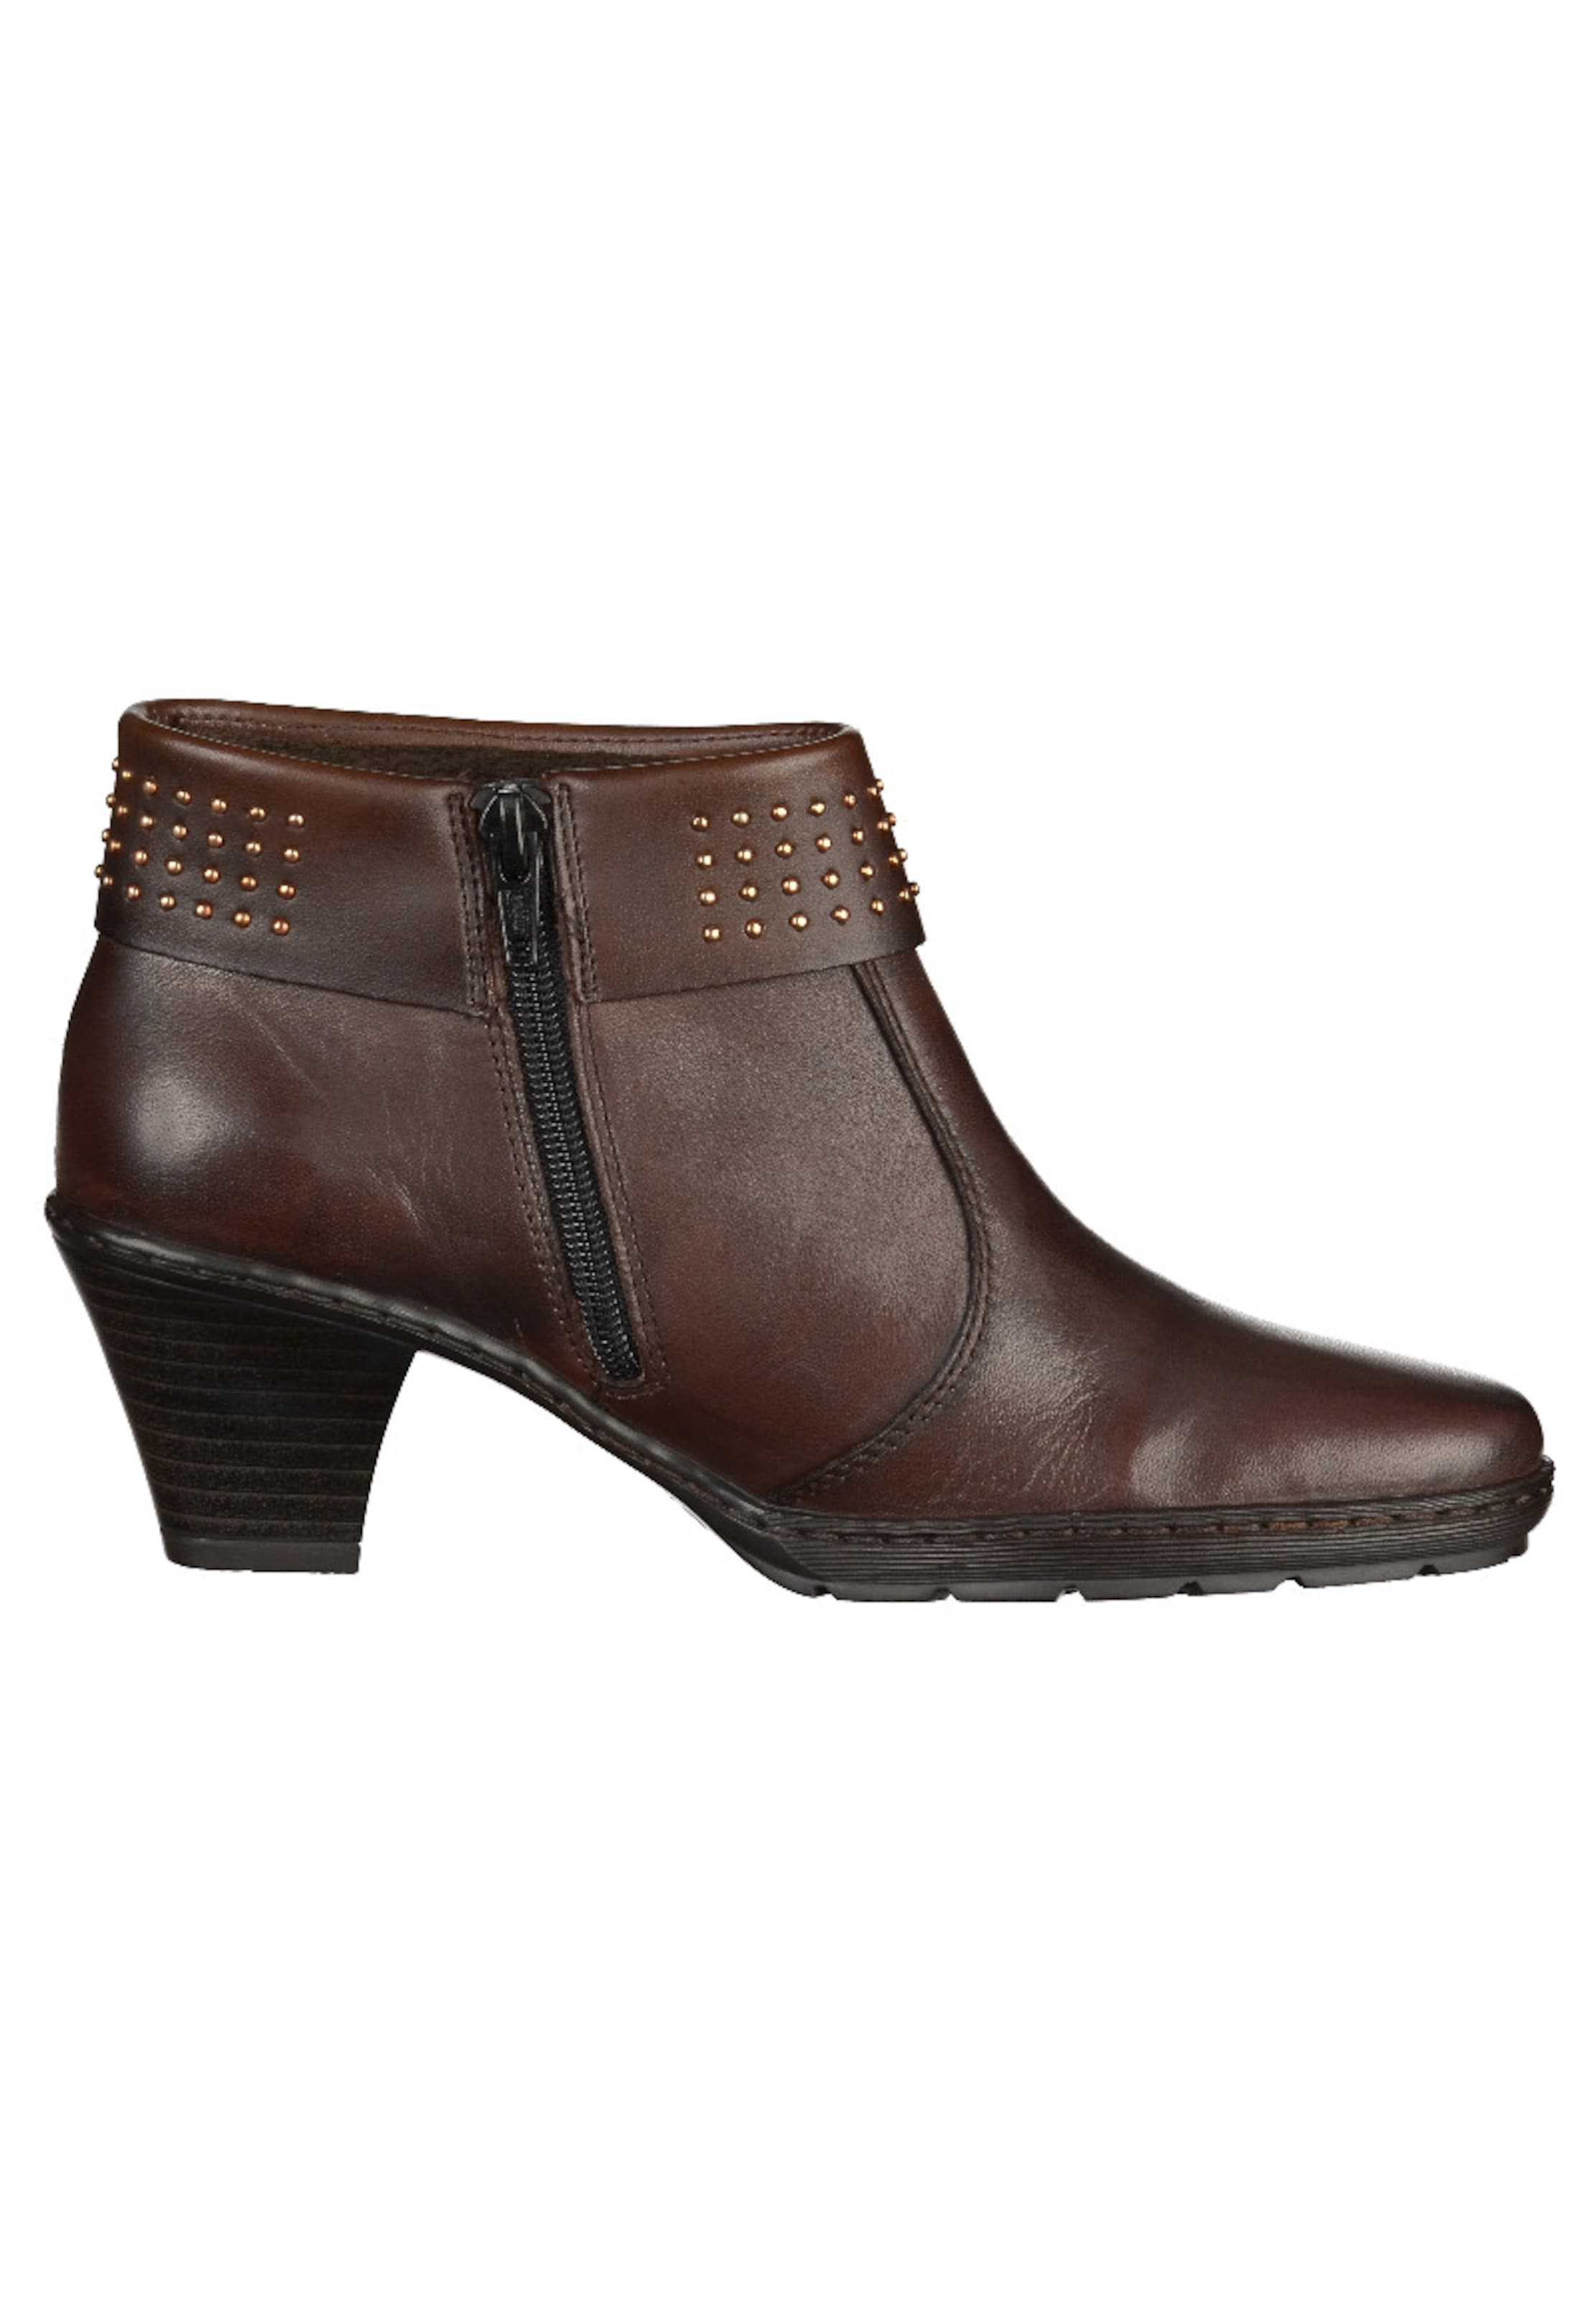 Rieker Rieker Stiefelette Rieker Stiefelette In Dunkelbraun Dunkelbraun Stiefelette In Rieker Dunkelbraun In O0nw8kP